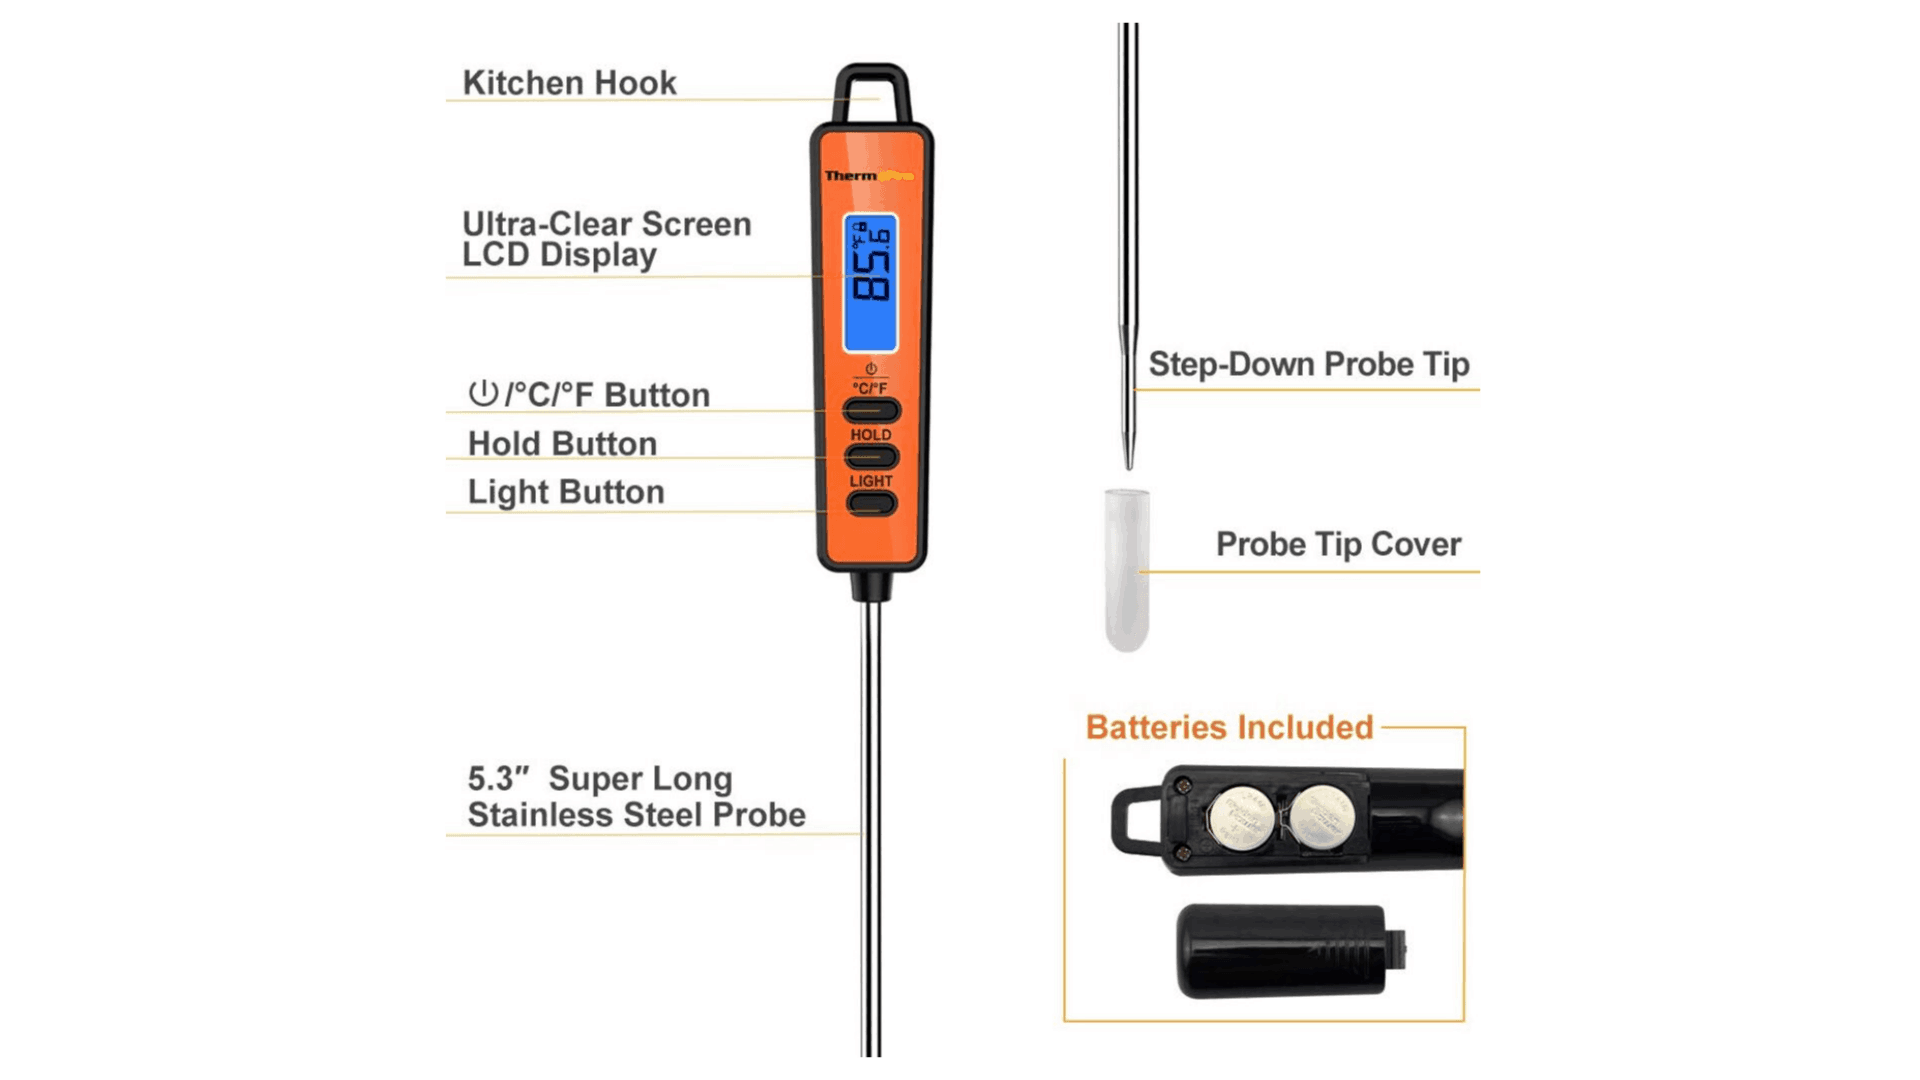 diagram of ThermoPro TP01A Instant Read Meat Thermometer features